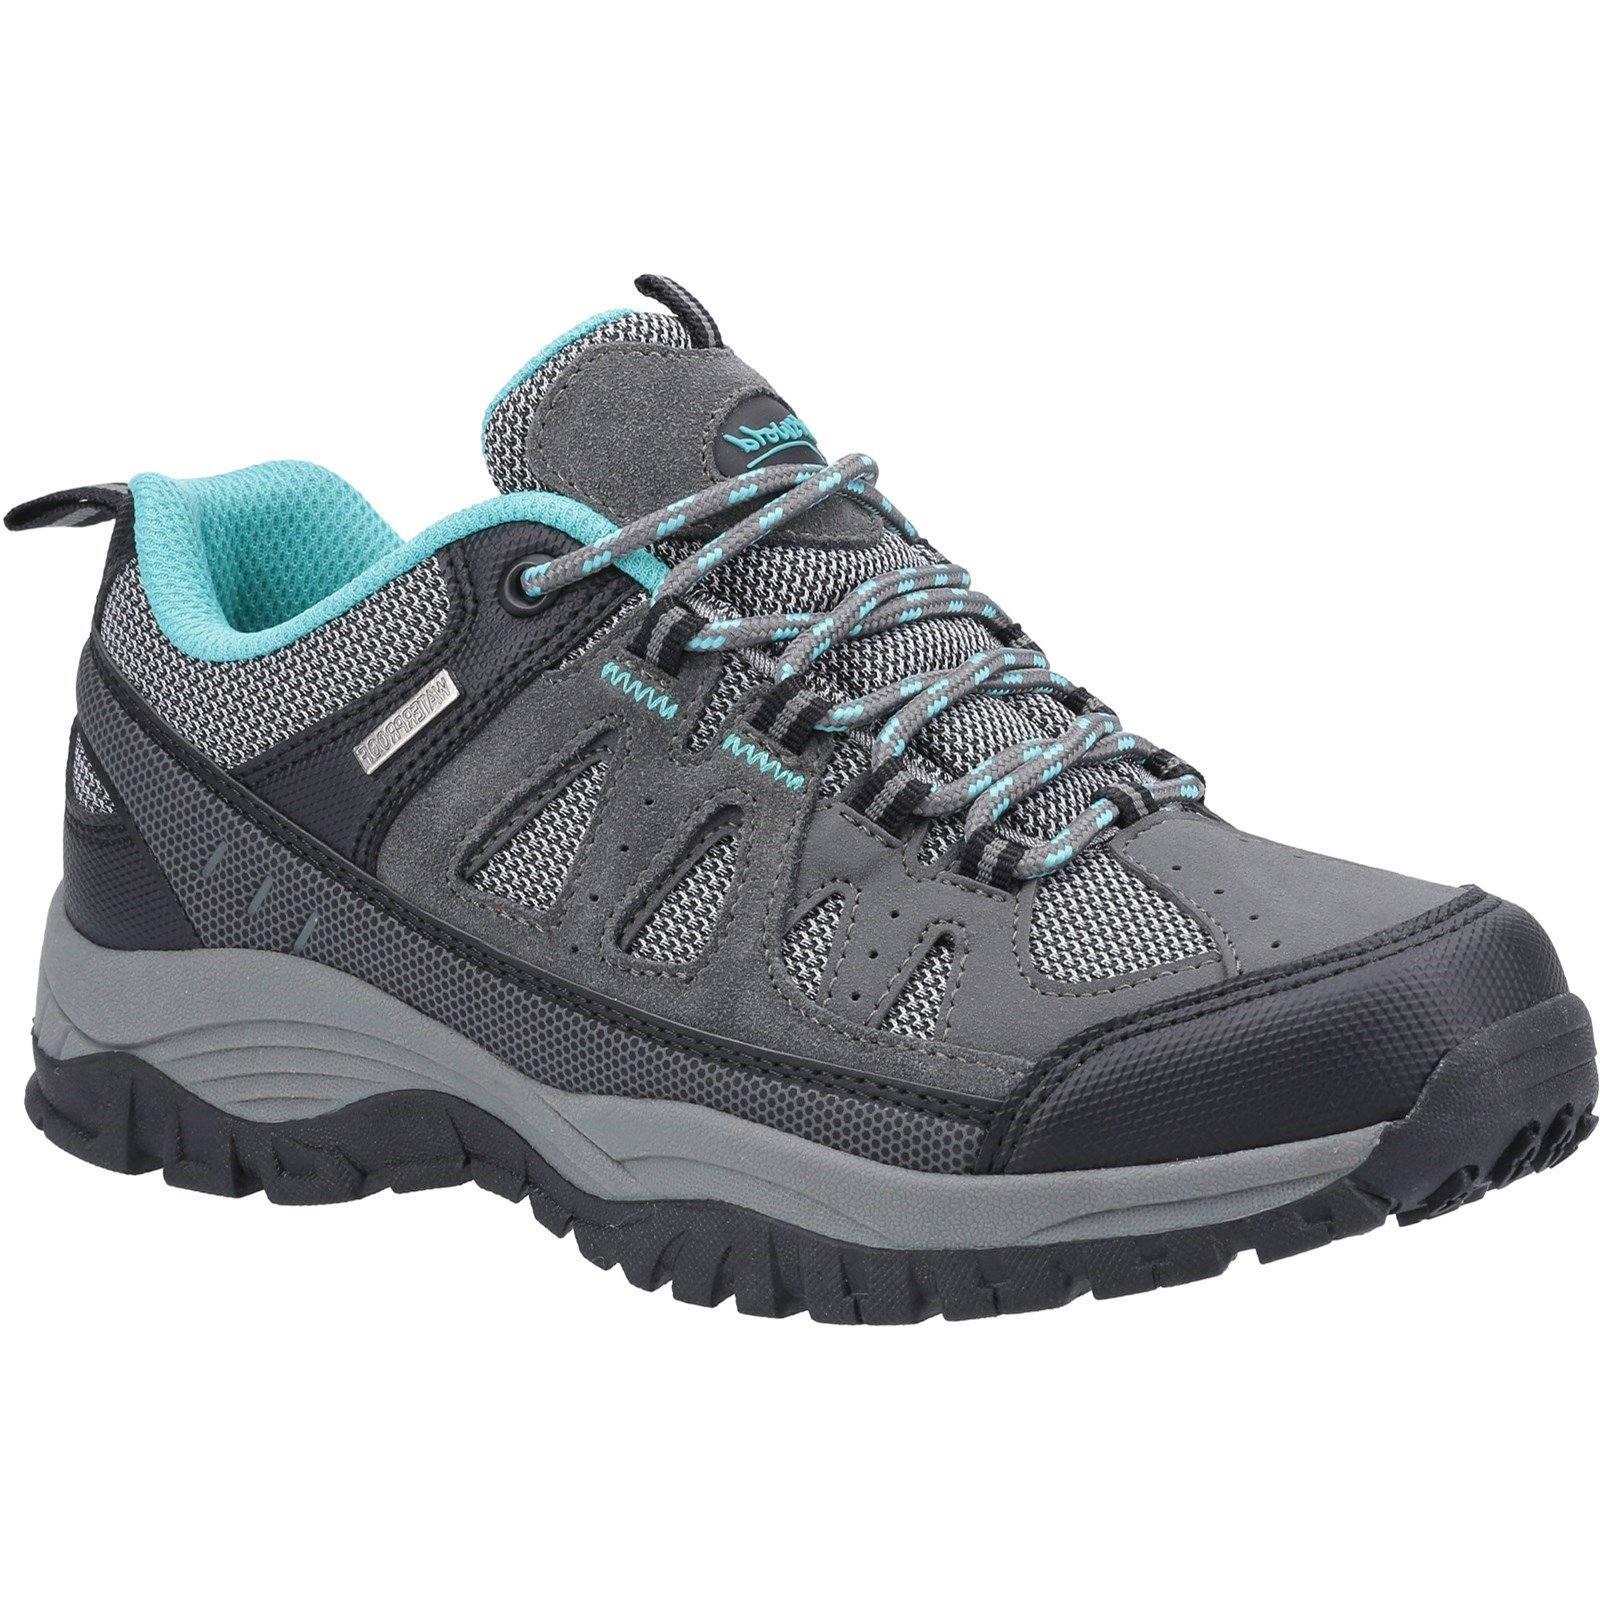 Cotswold Women's Maisemore Low Hiking Boot Grey 32988 - Grey 3